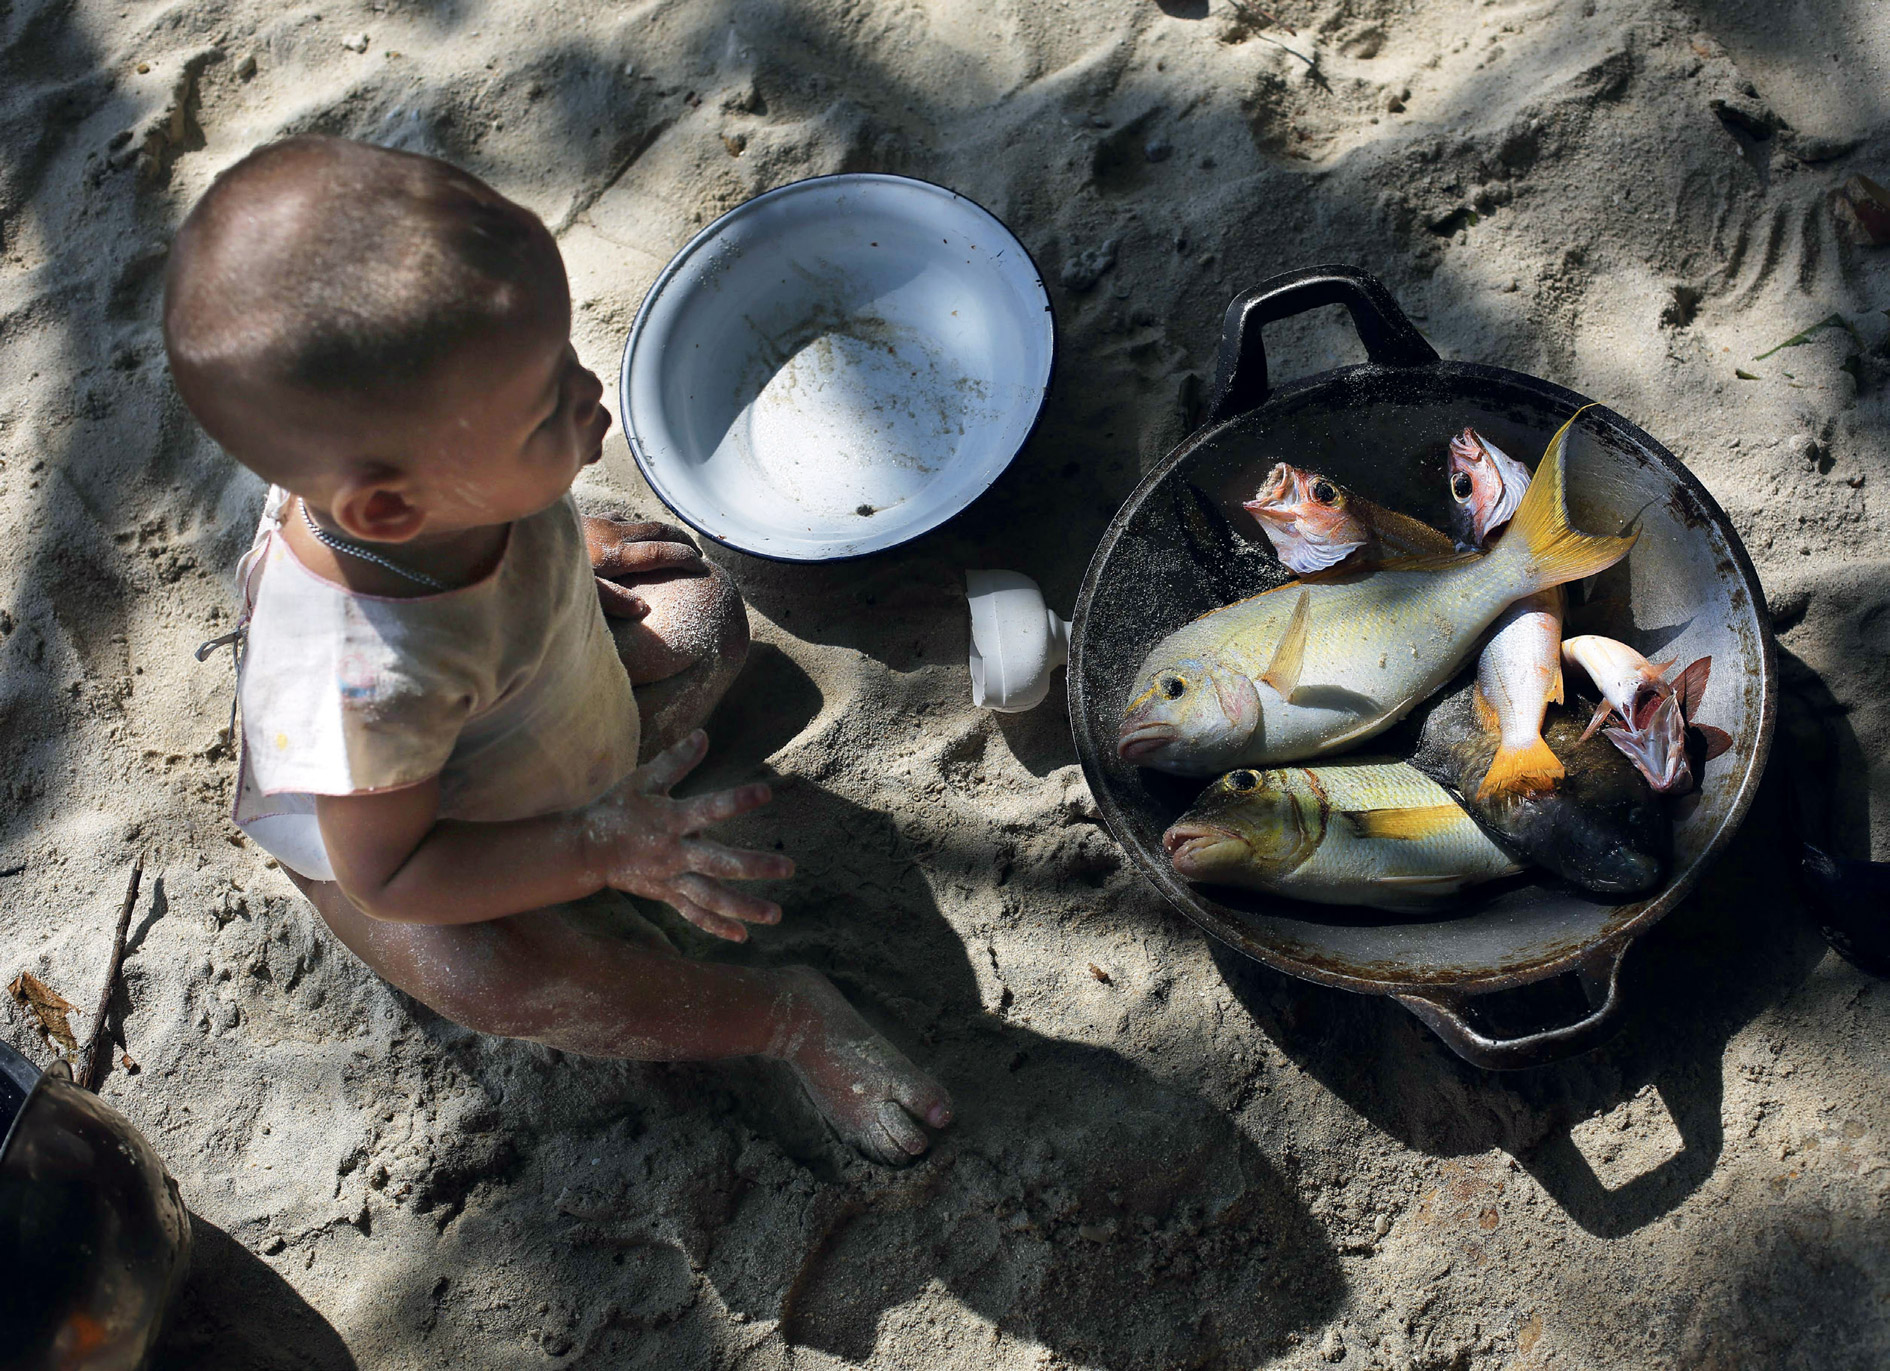 A Moken child eyes his lunch. The Mergui archipelago, where he lives, is rich in marine biodiversity. With 116 languages, Burma is also a language hotspot. <br />